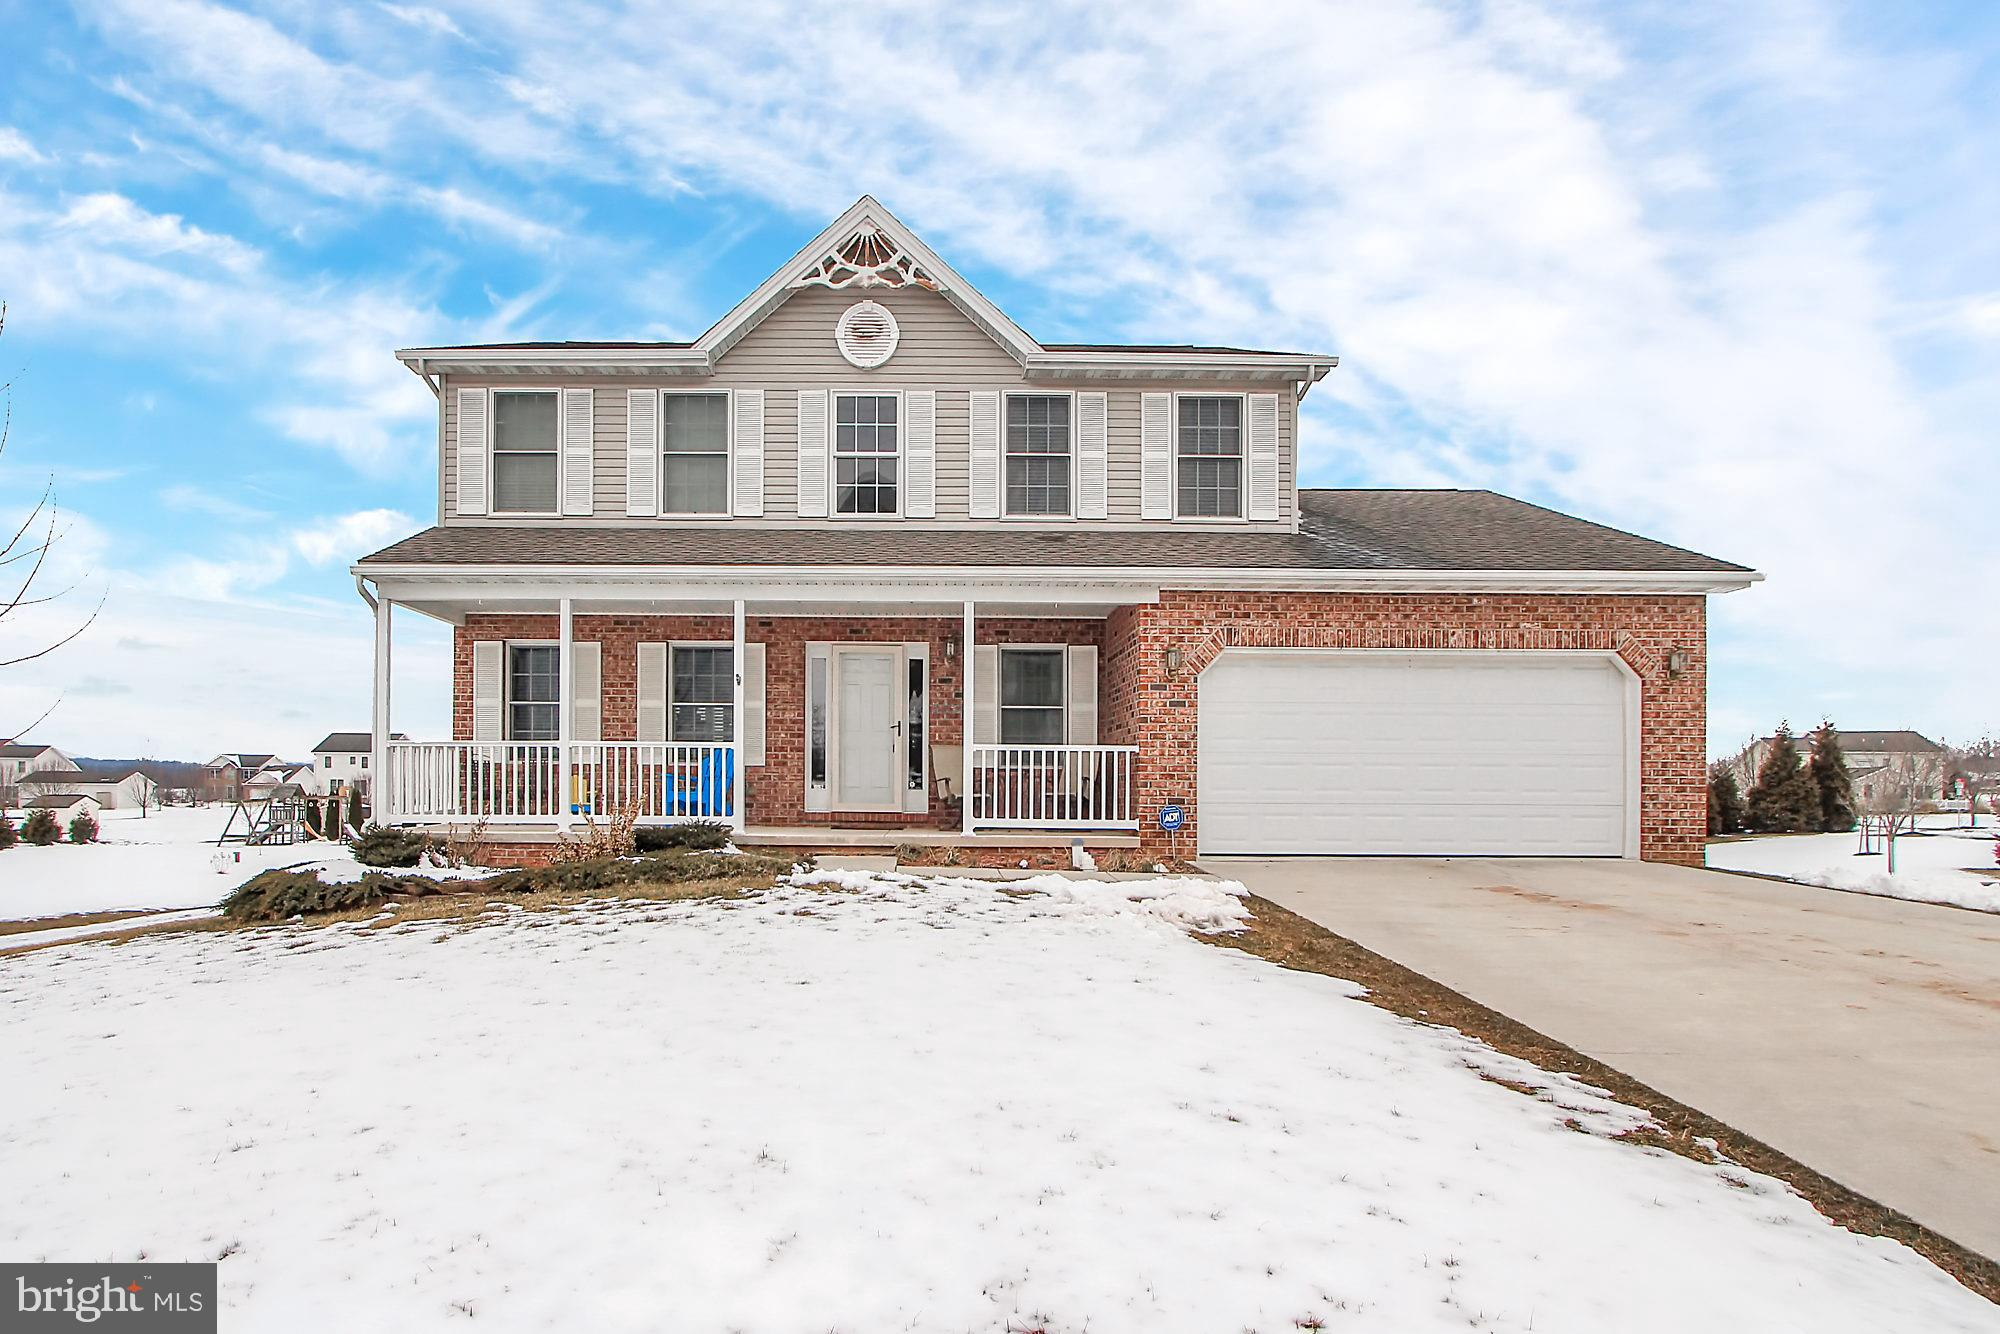 2034 STORMS STORE ROAD, NEW OXFORD, PA 17350